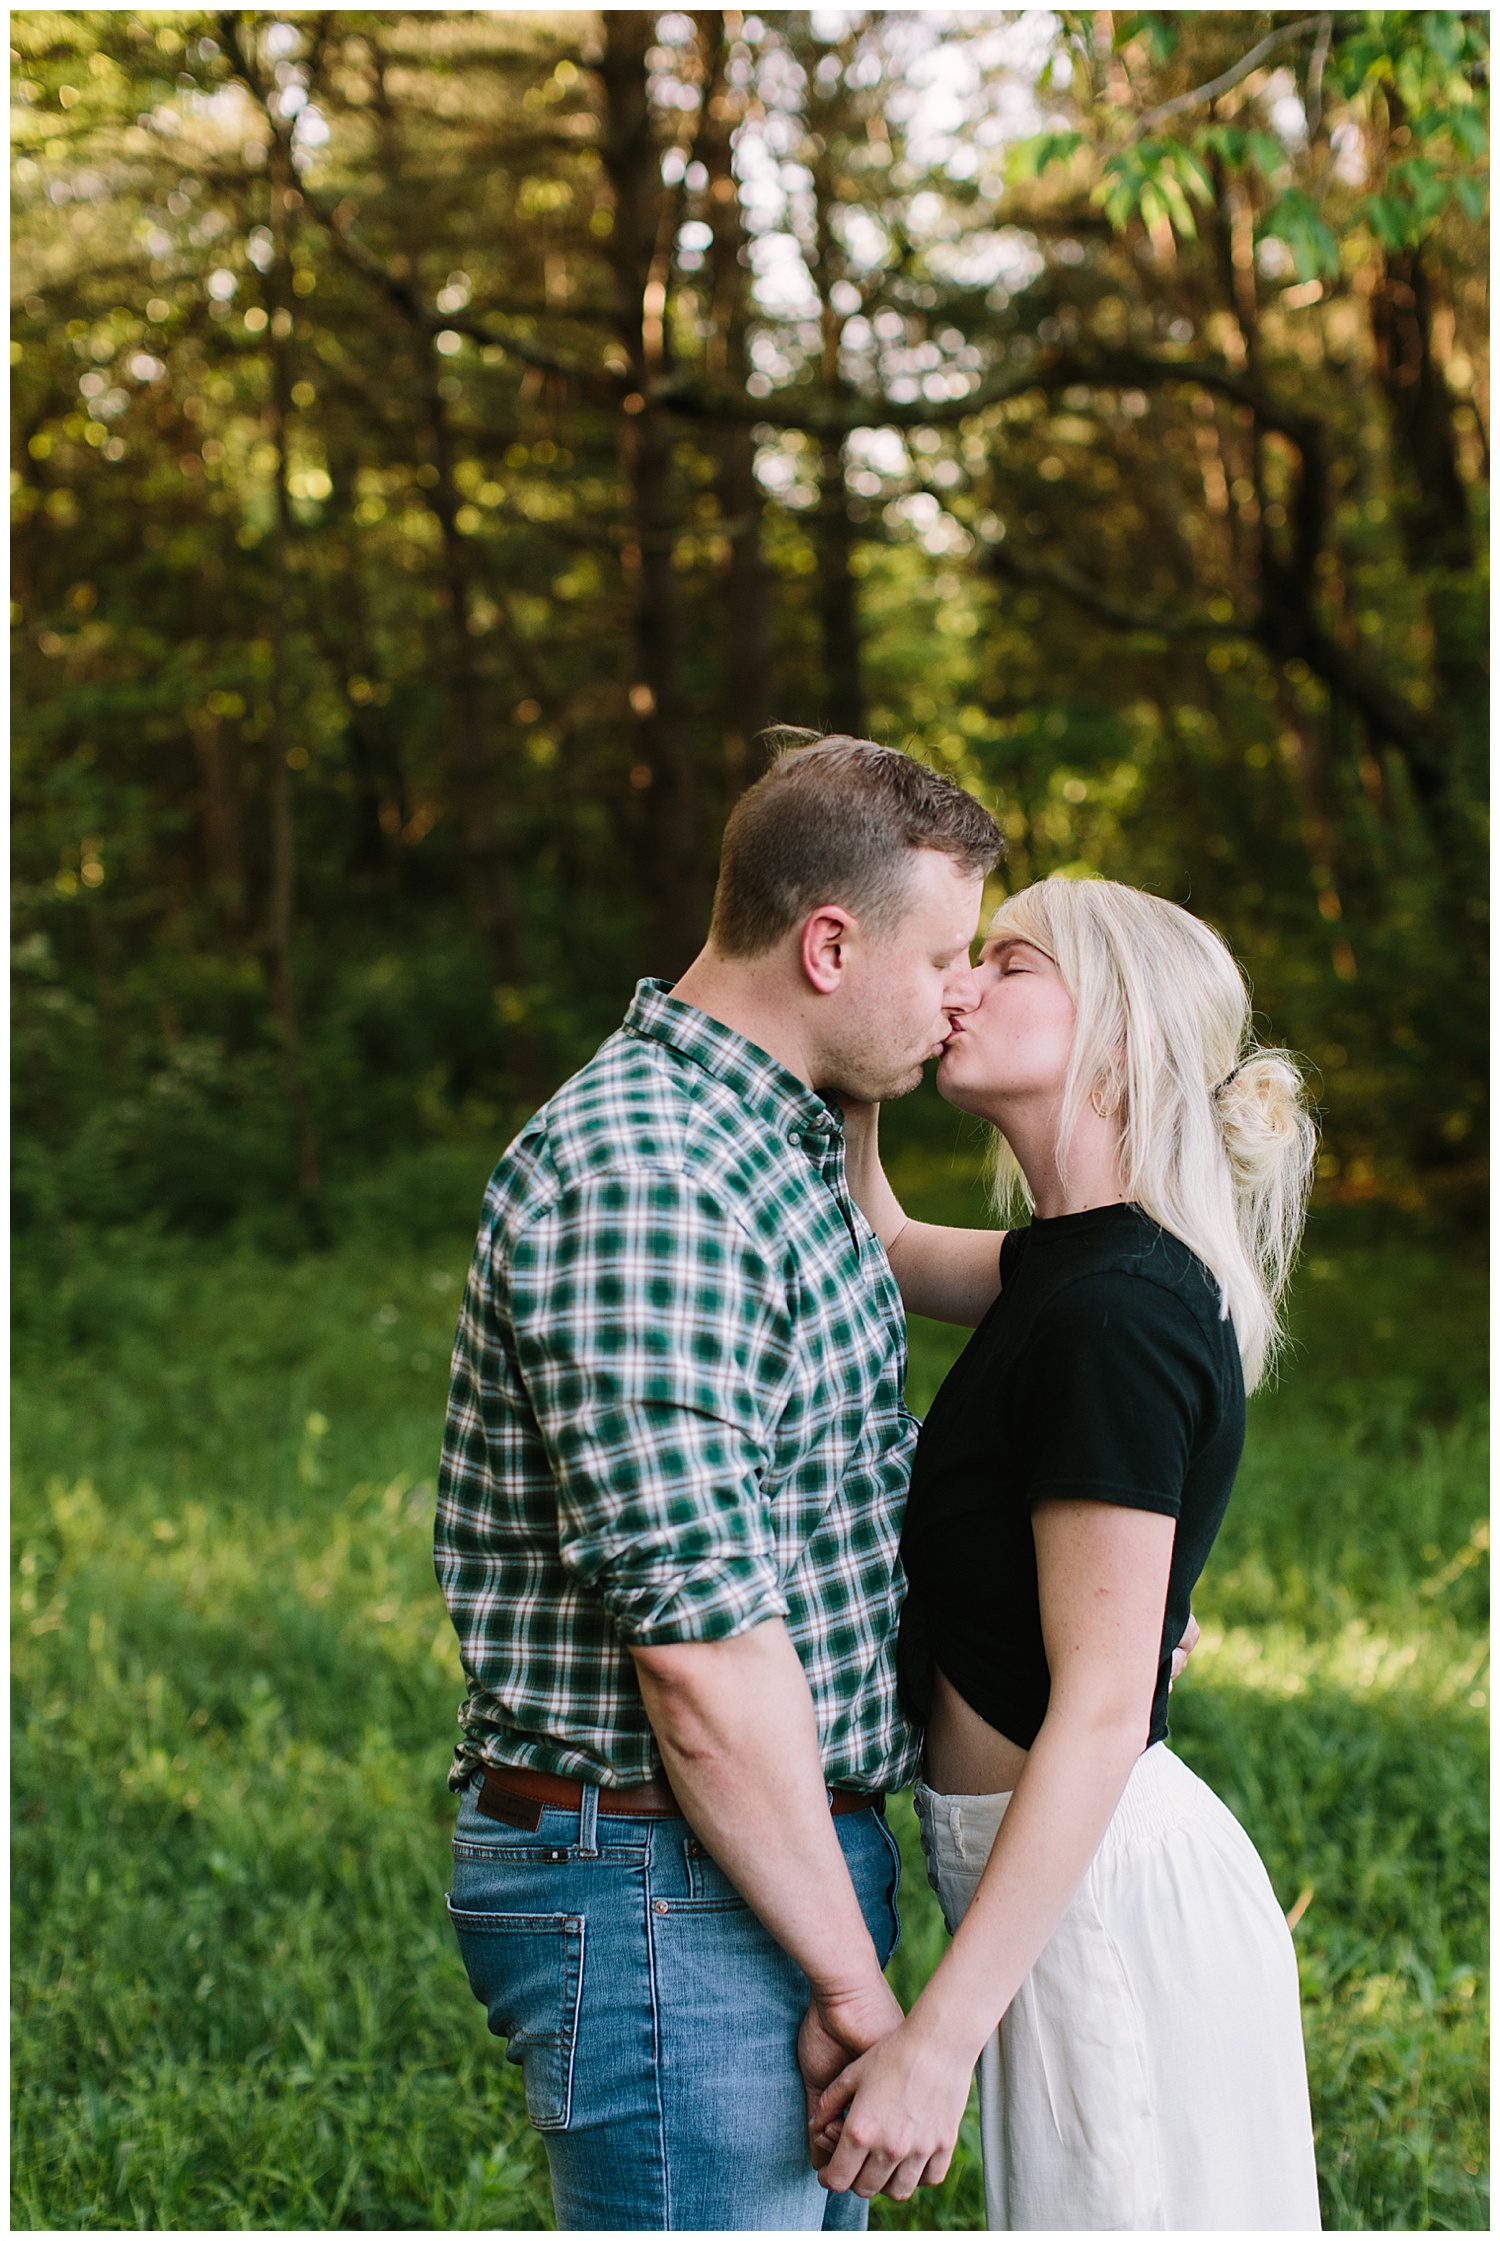 trent.and.kendra.photography.bernheim.forest.photos-18.jpg